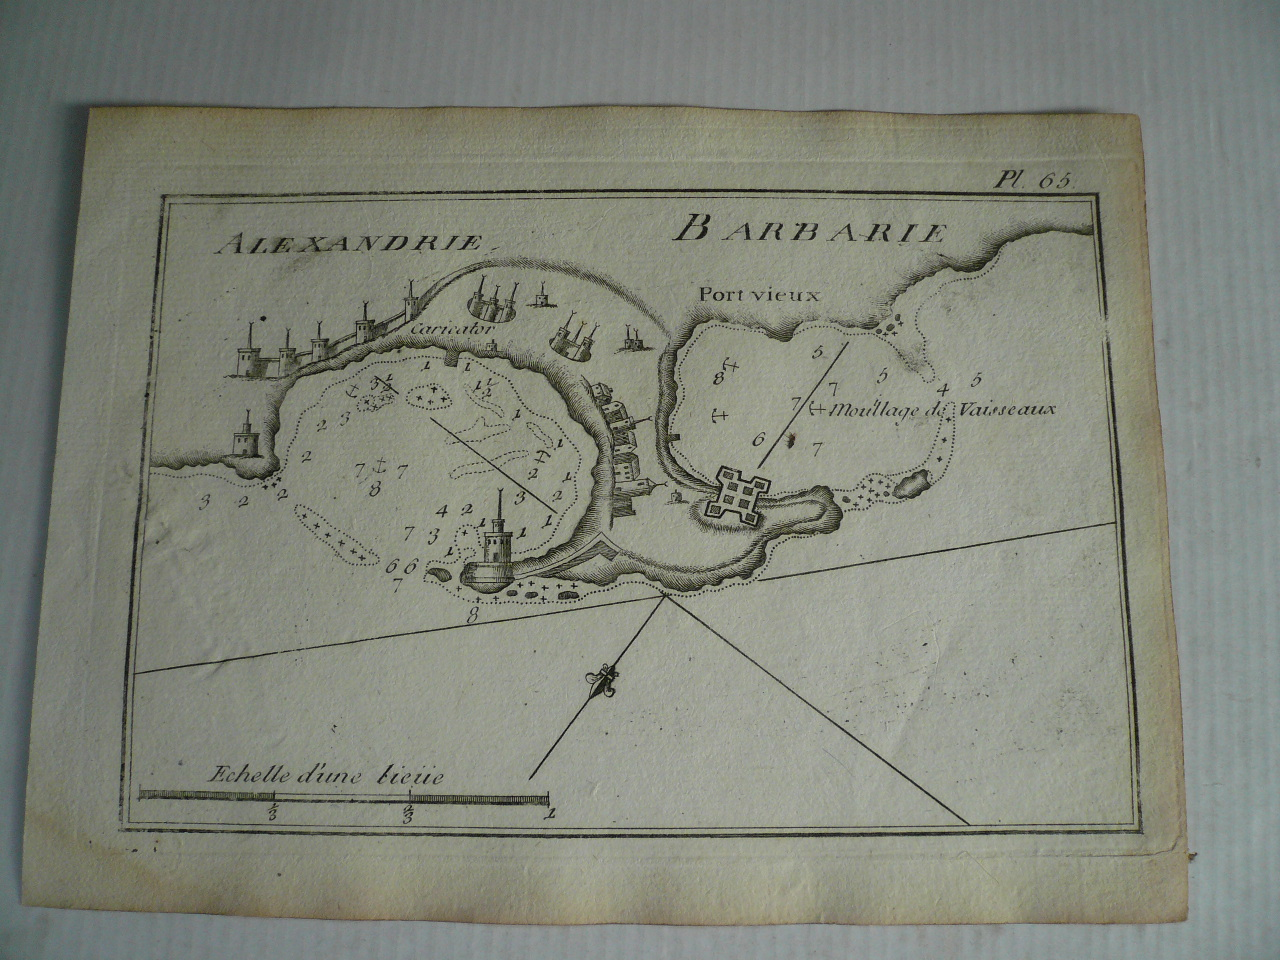 Alexandria, anno 1795, Roux J. Copperengraving, edited by Joseph